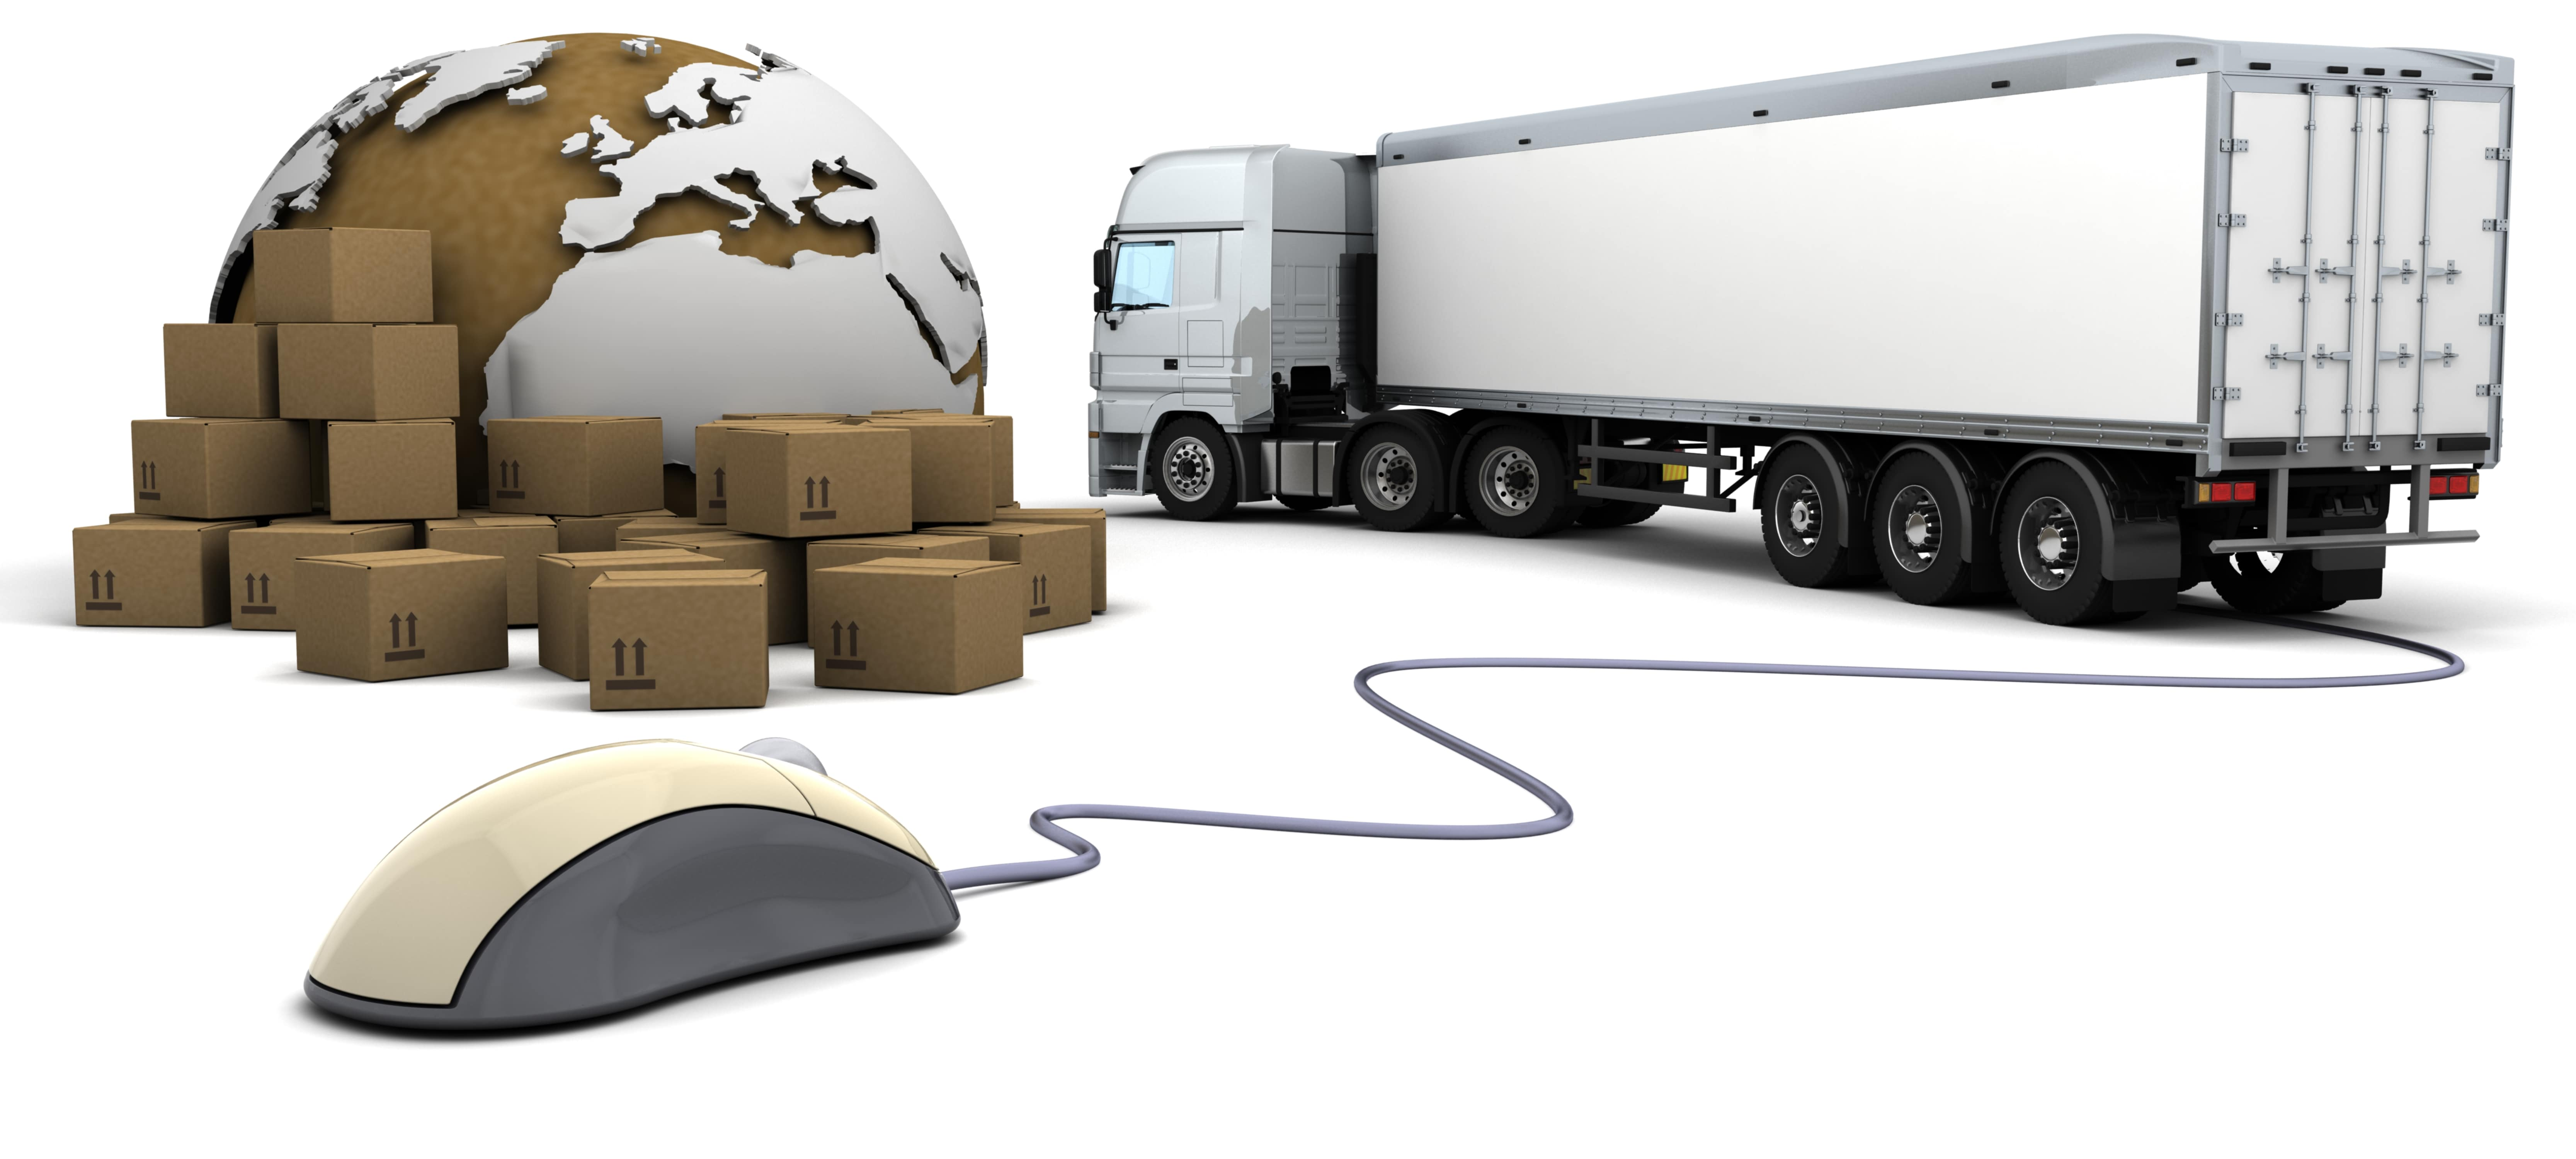 Manufacturers and Online Retailers Make the Most of Transport Logistics Services